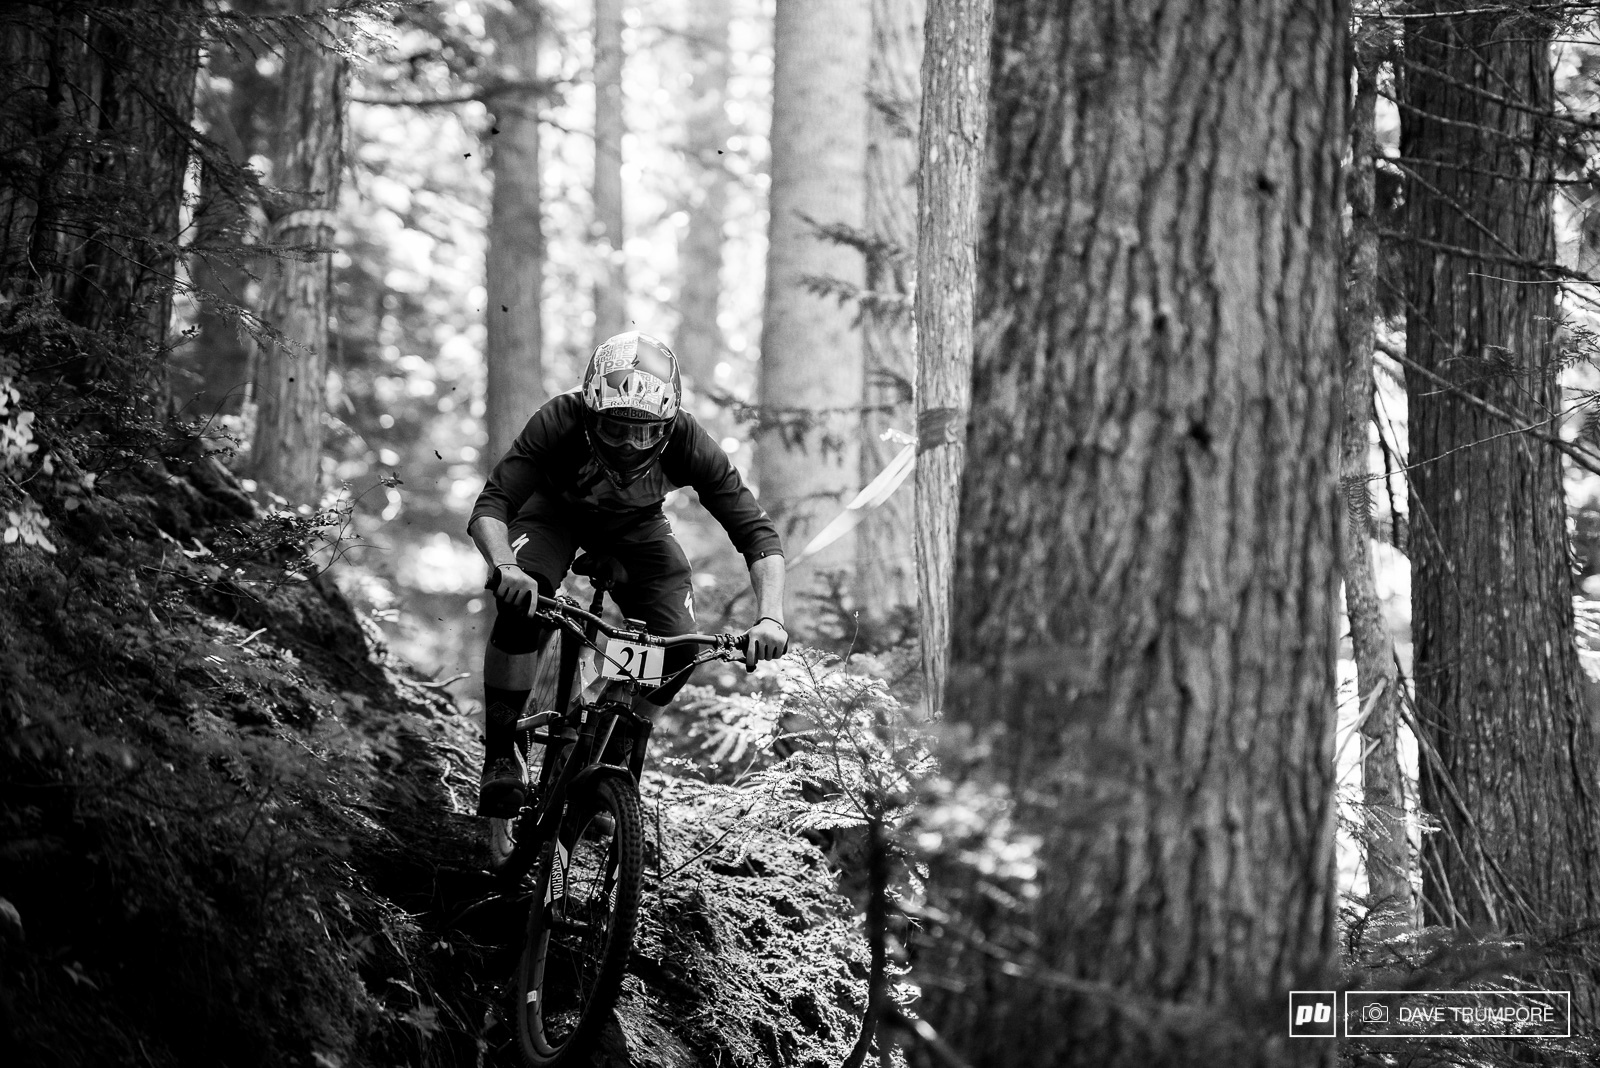 Curtis had pretty high hopes coming into Whistler but would eventually have to settle for 9th.